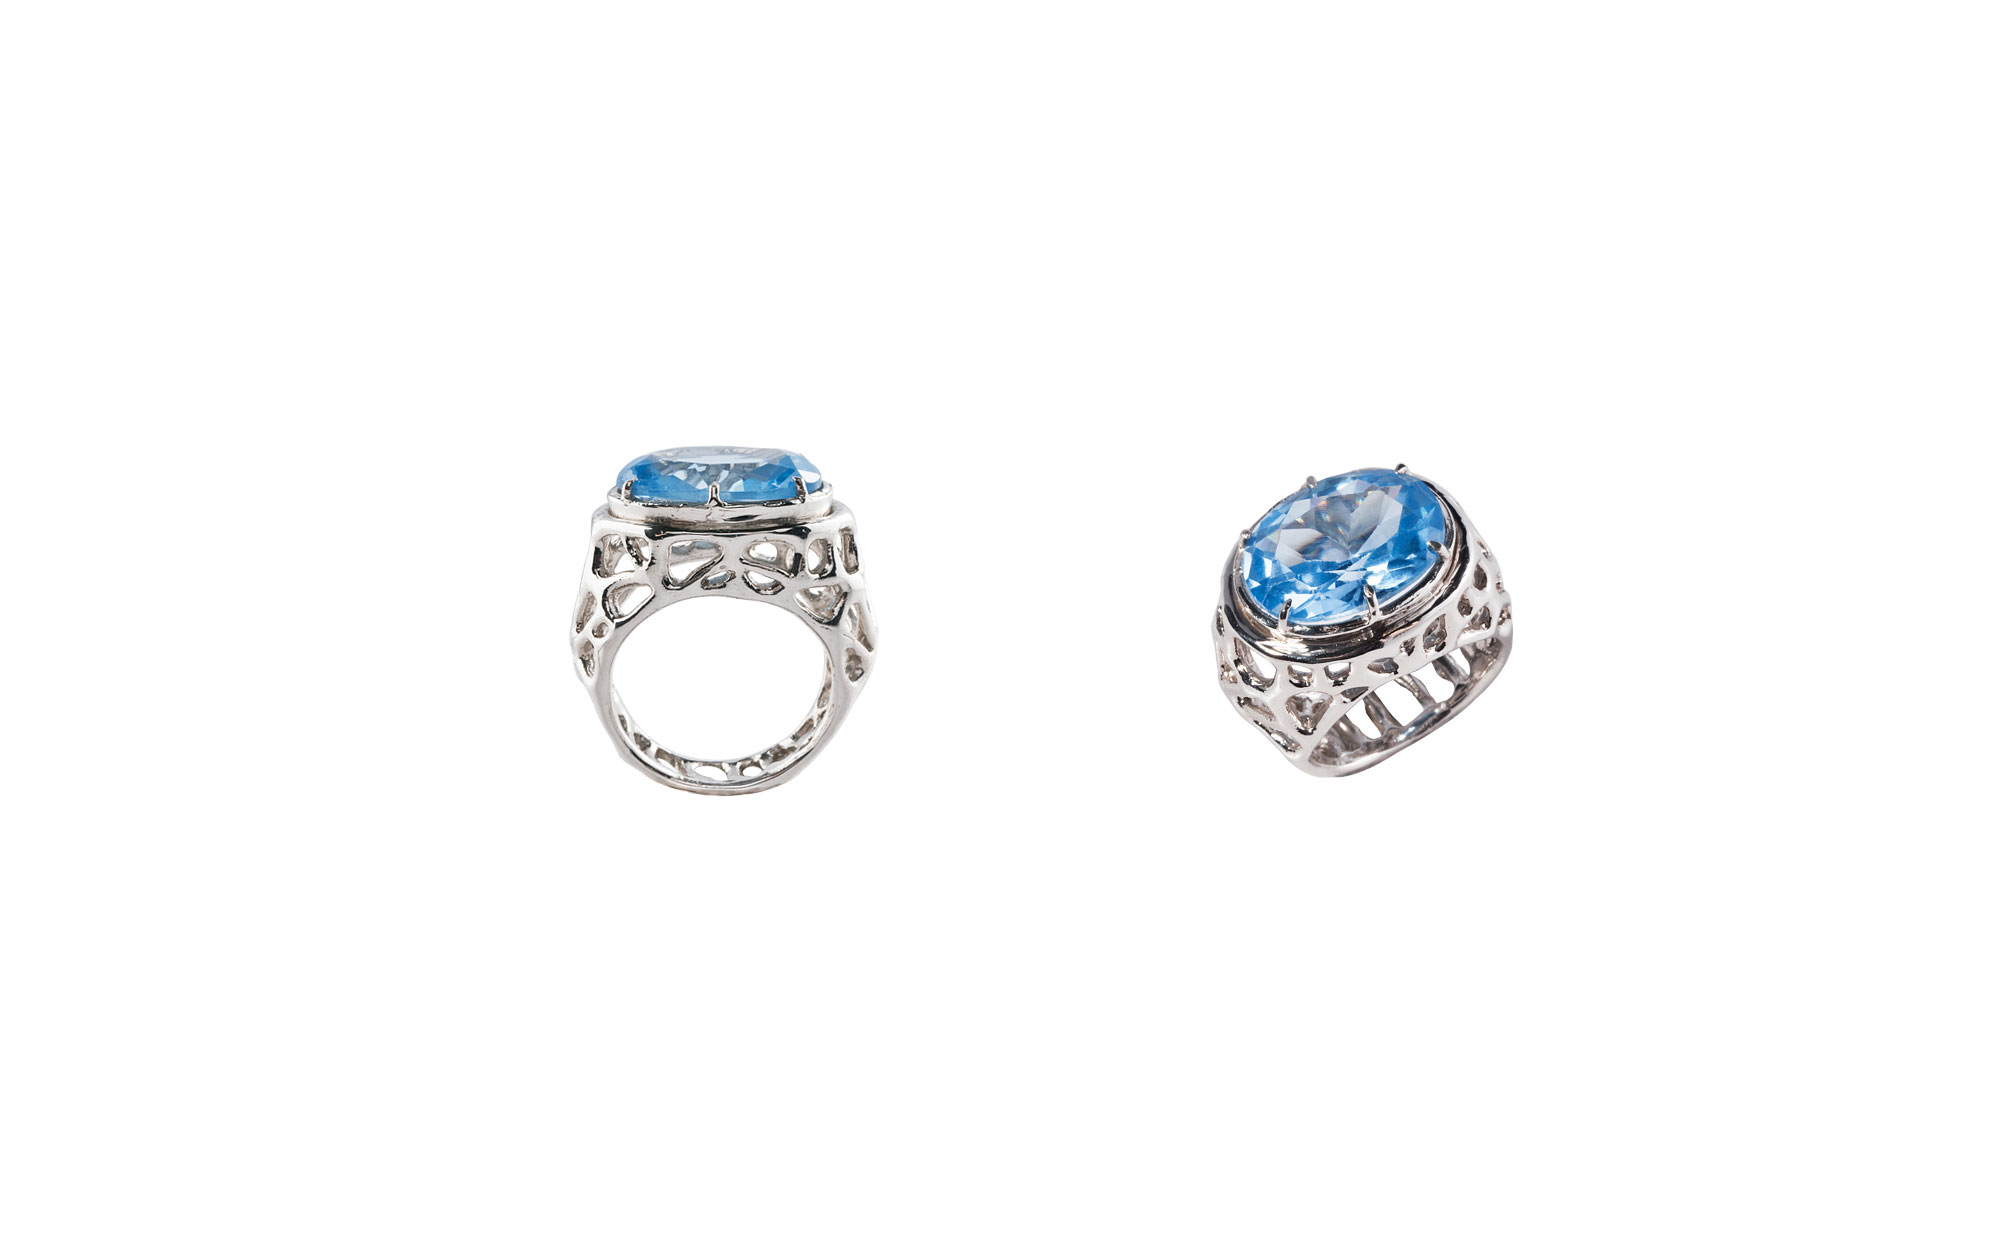 Silver dome web ring with light blue zircon